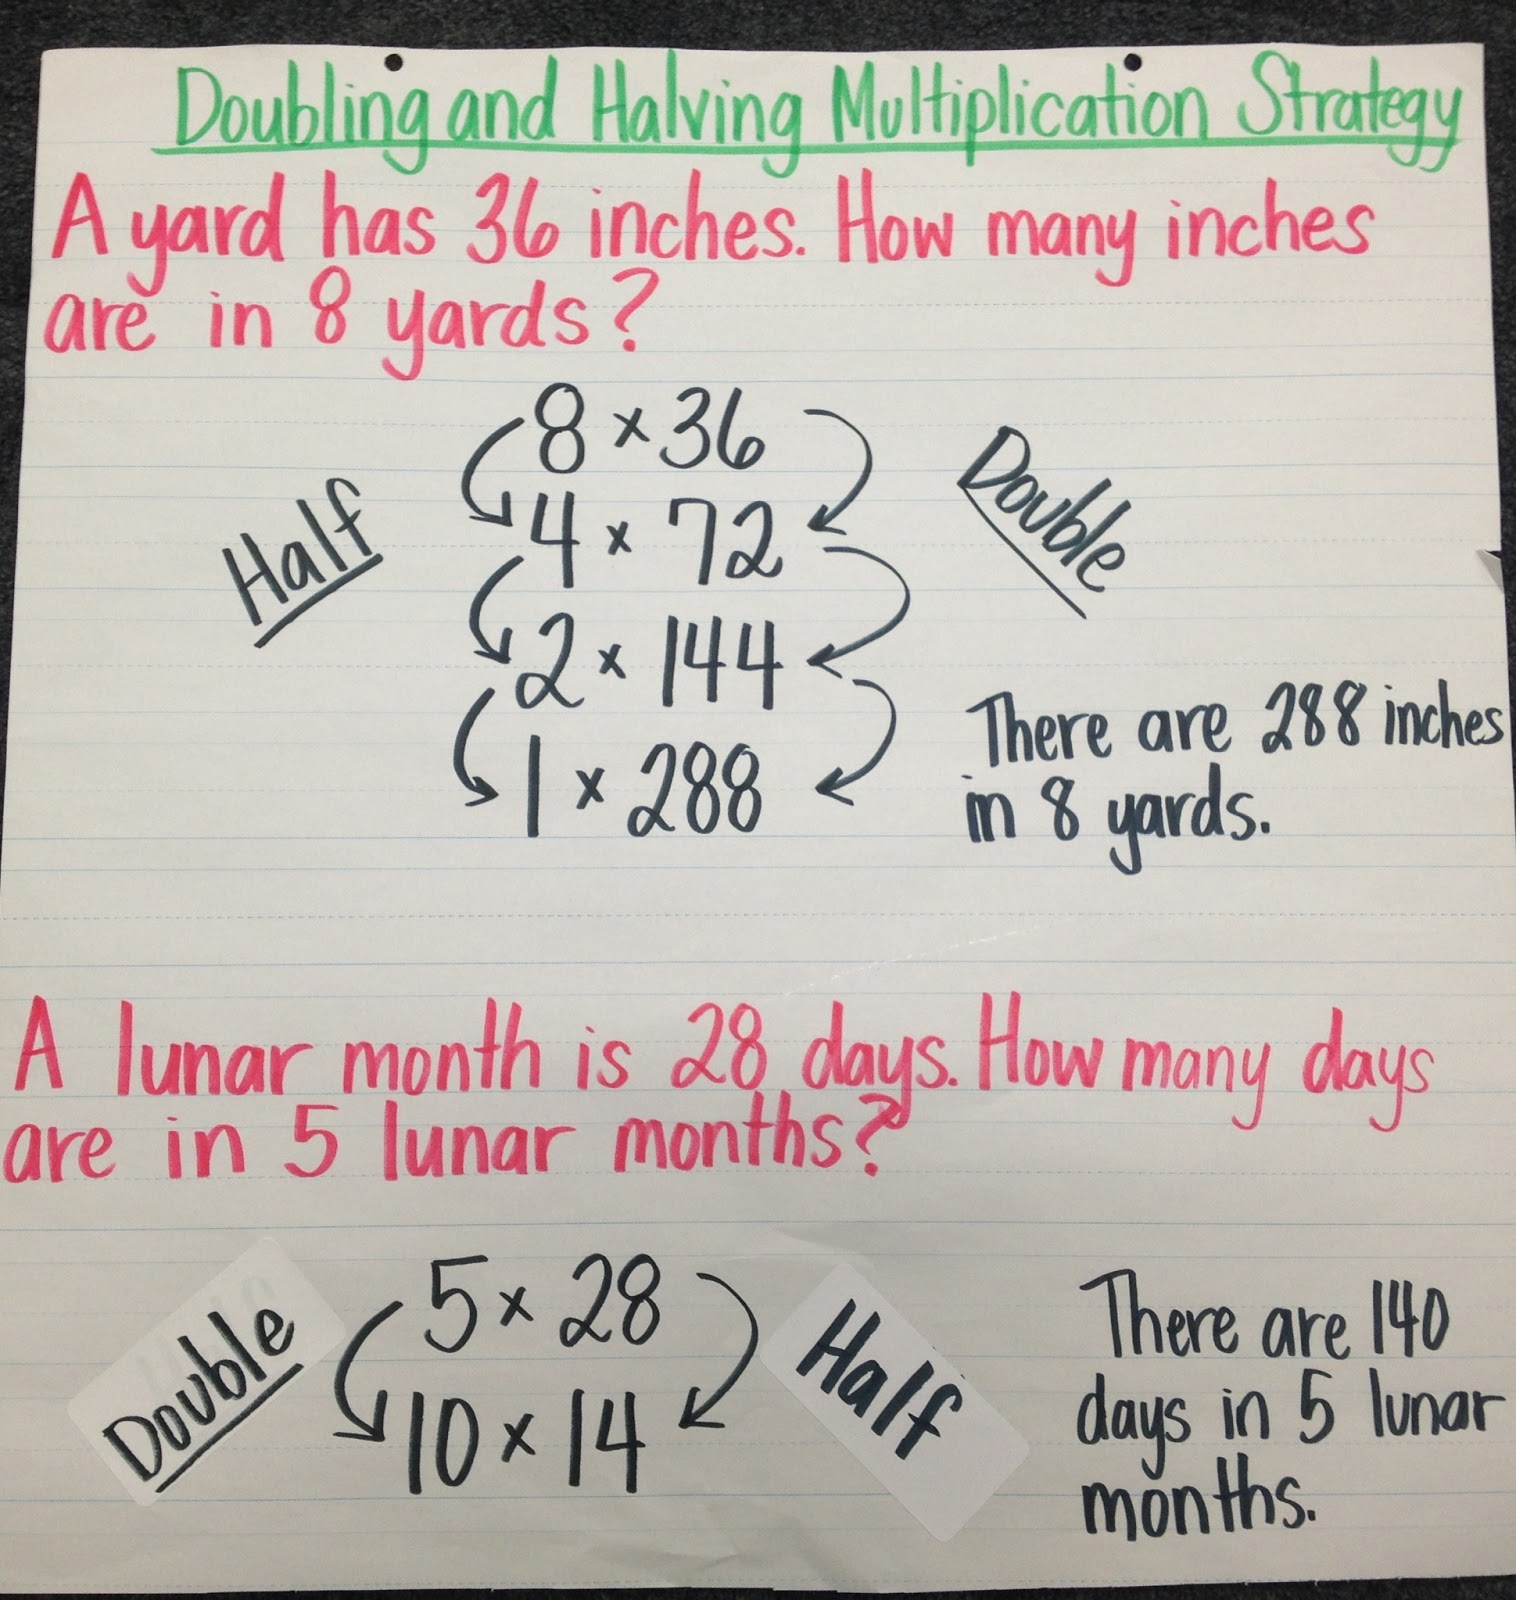 5 Star Bakery Doubling And Halving Math Strategy